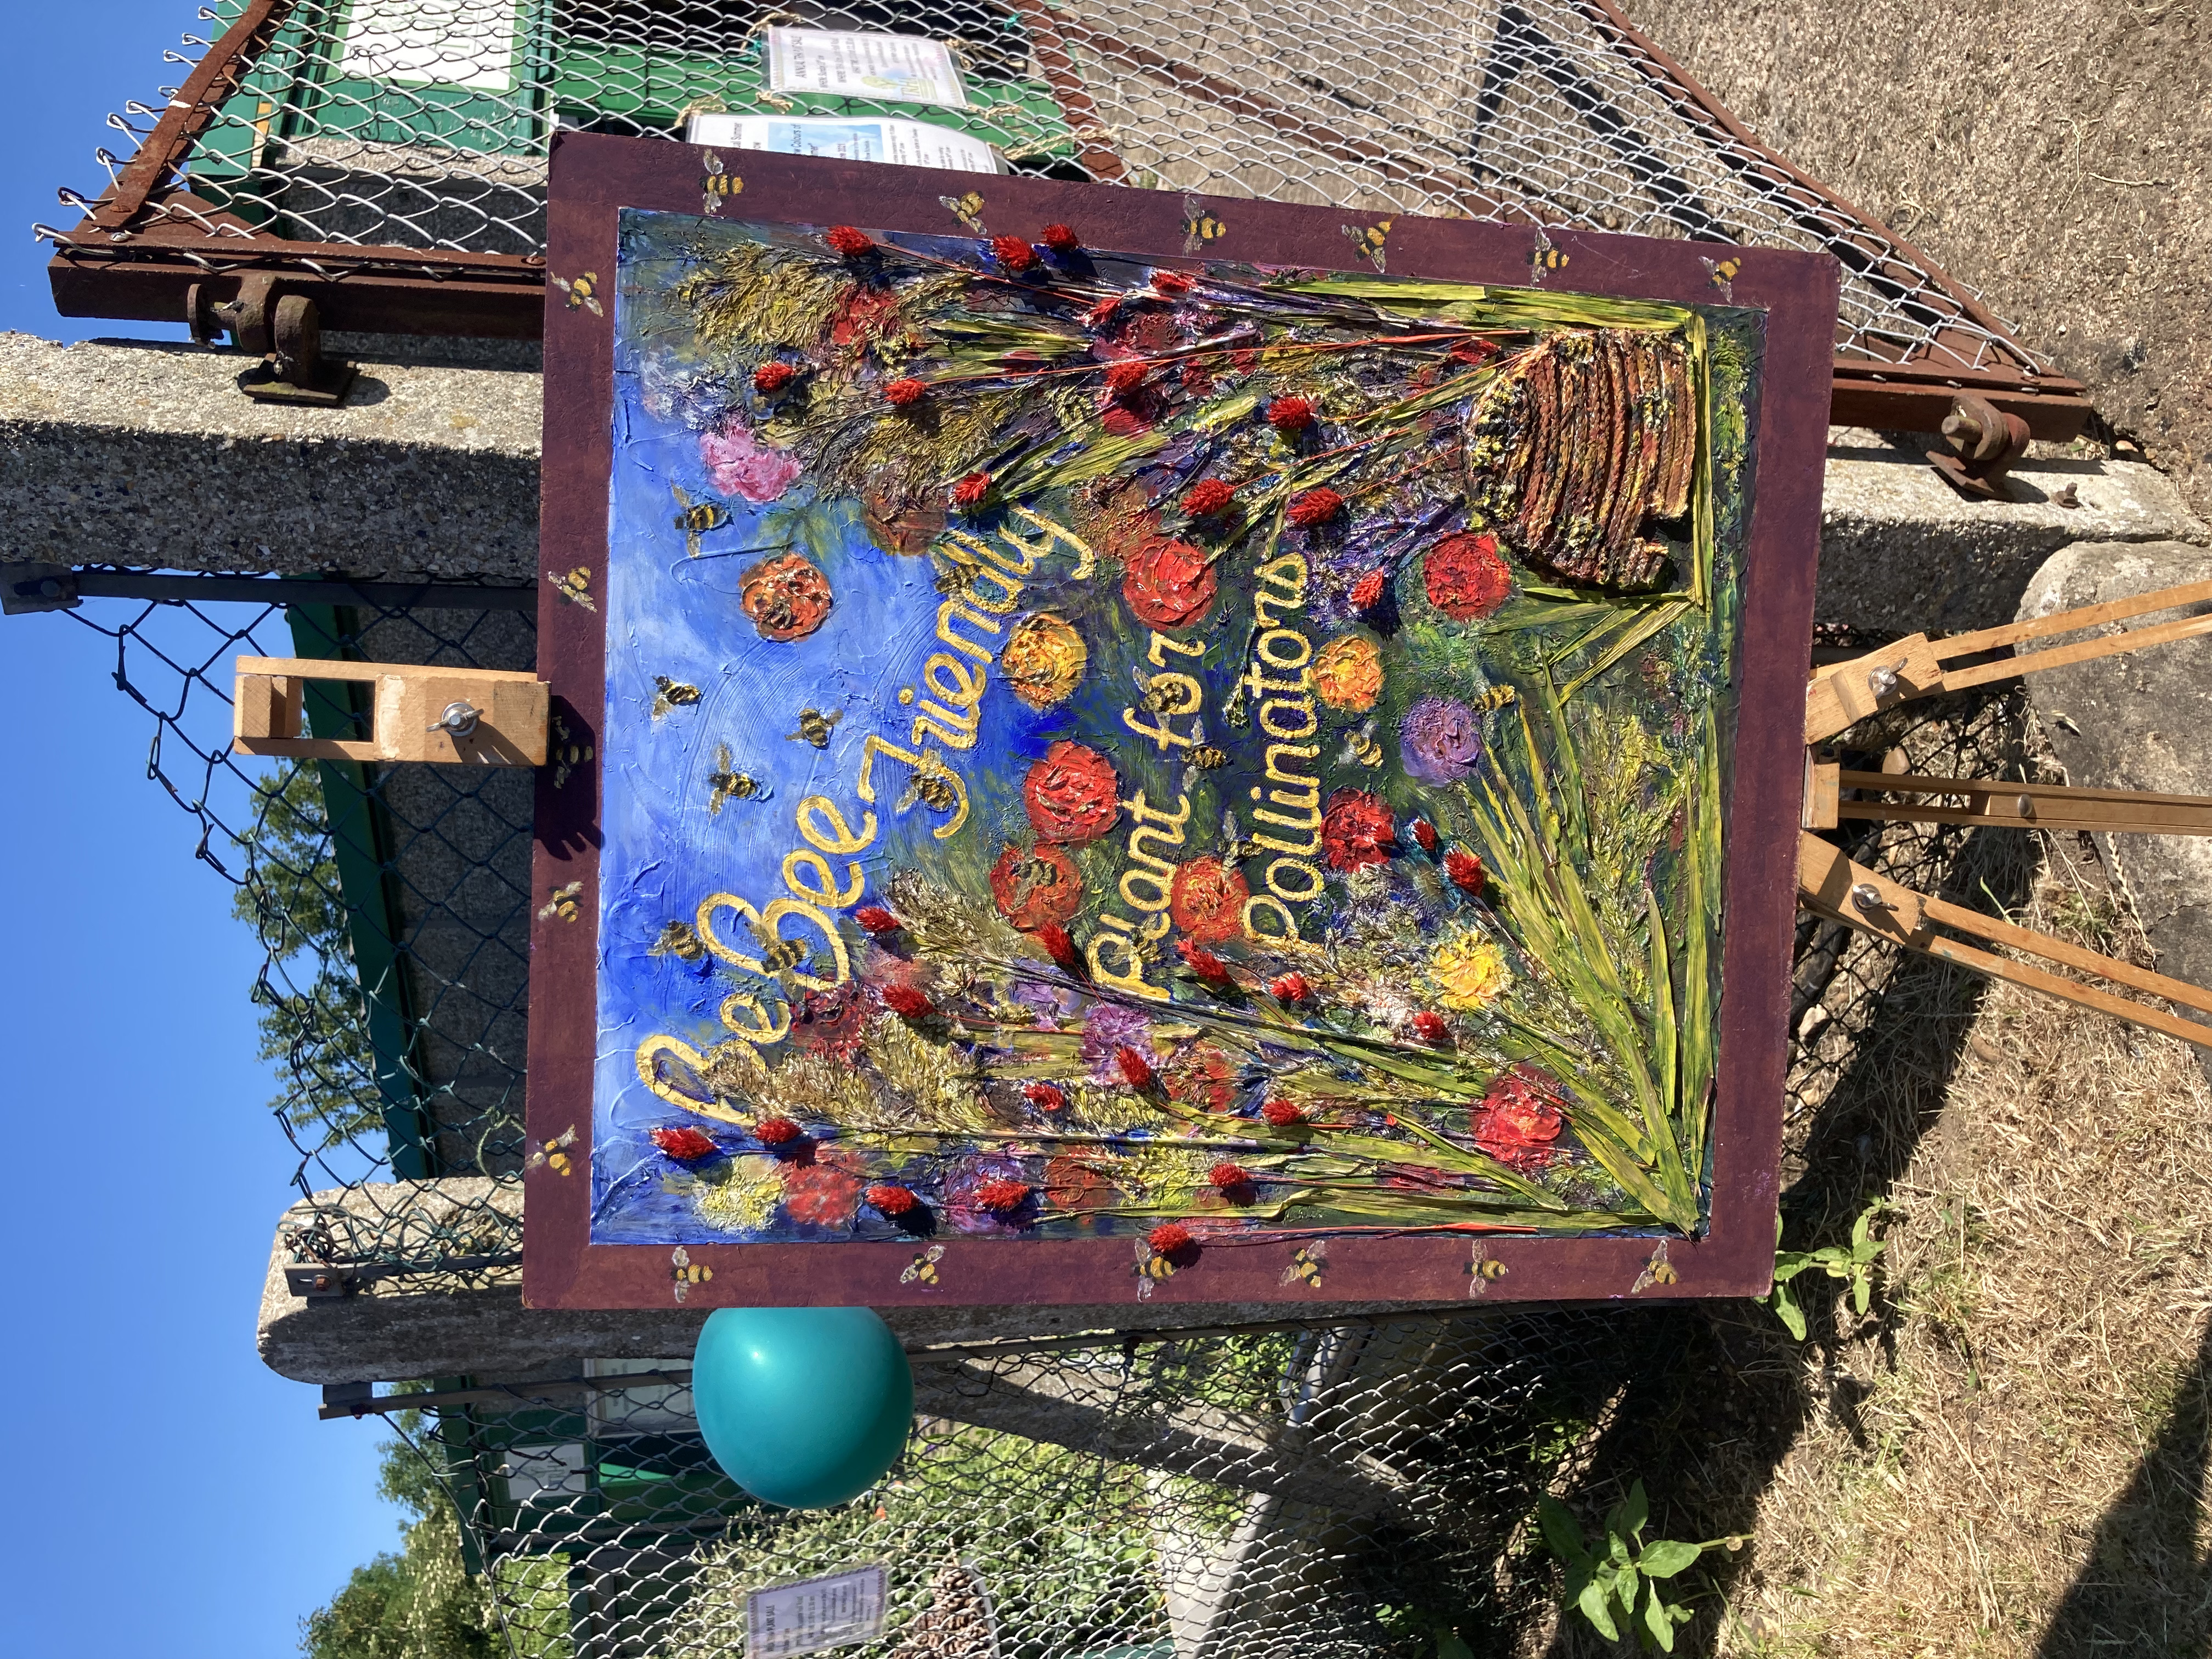 A pretty painting on display at the Plant Sale June 2021